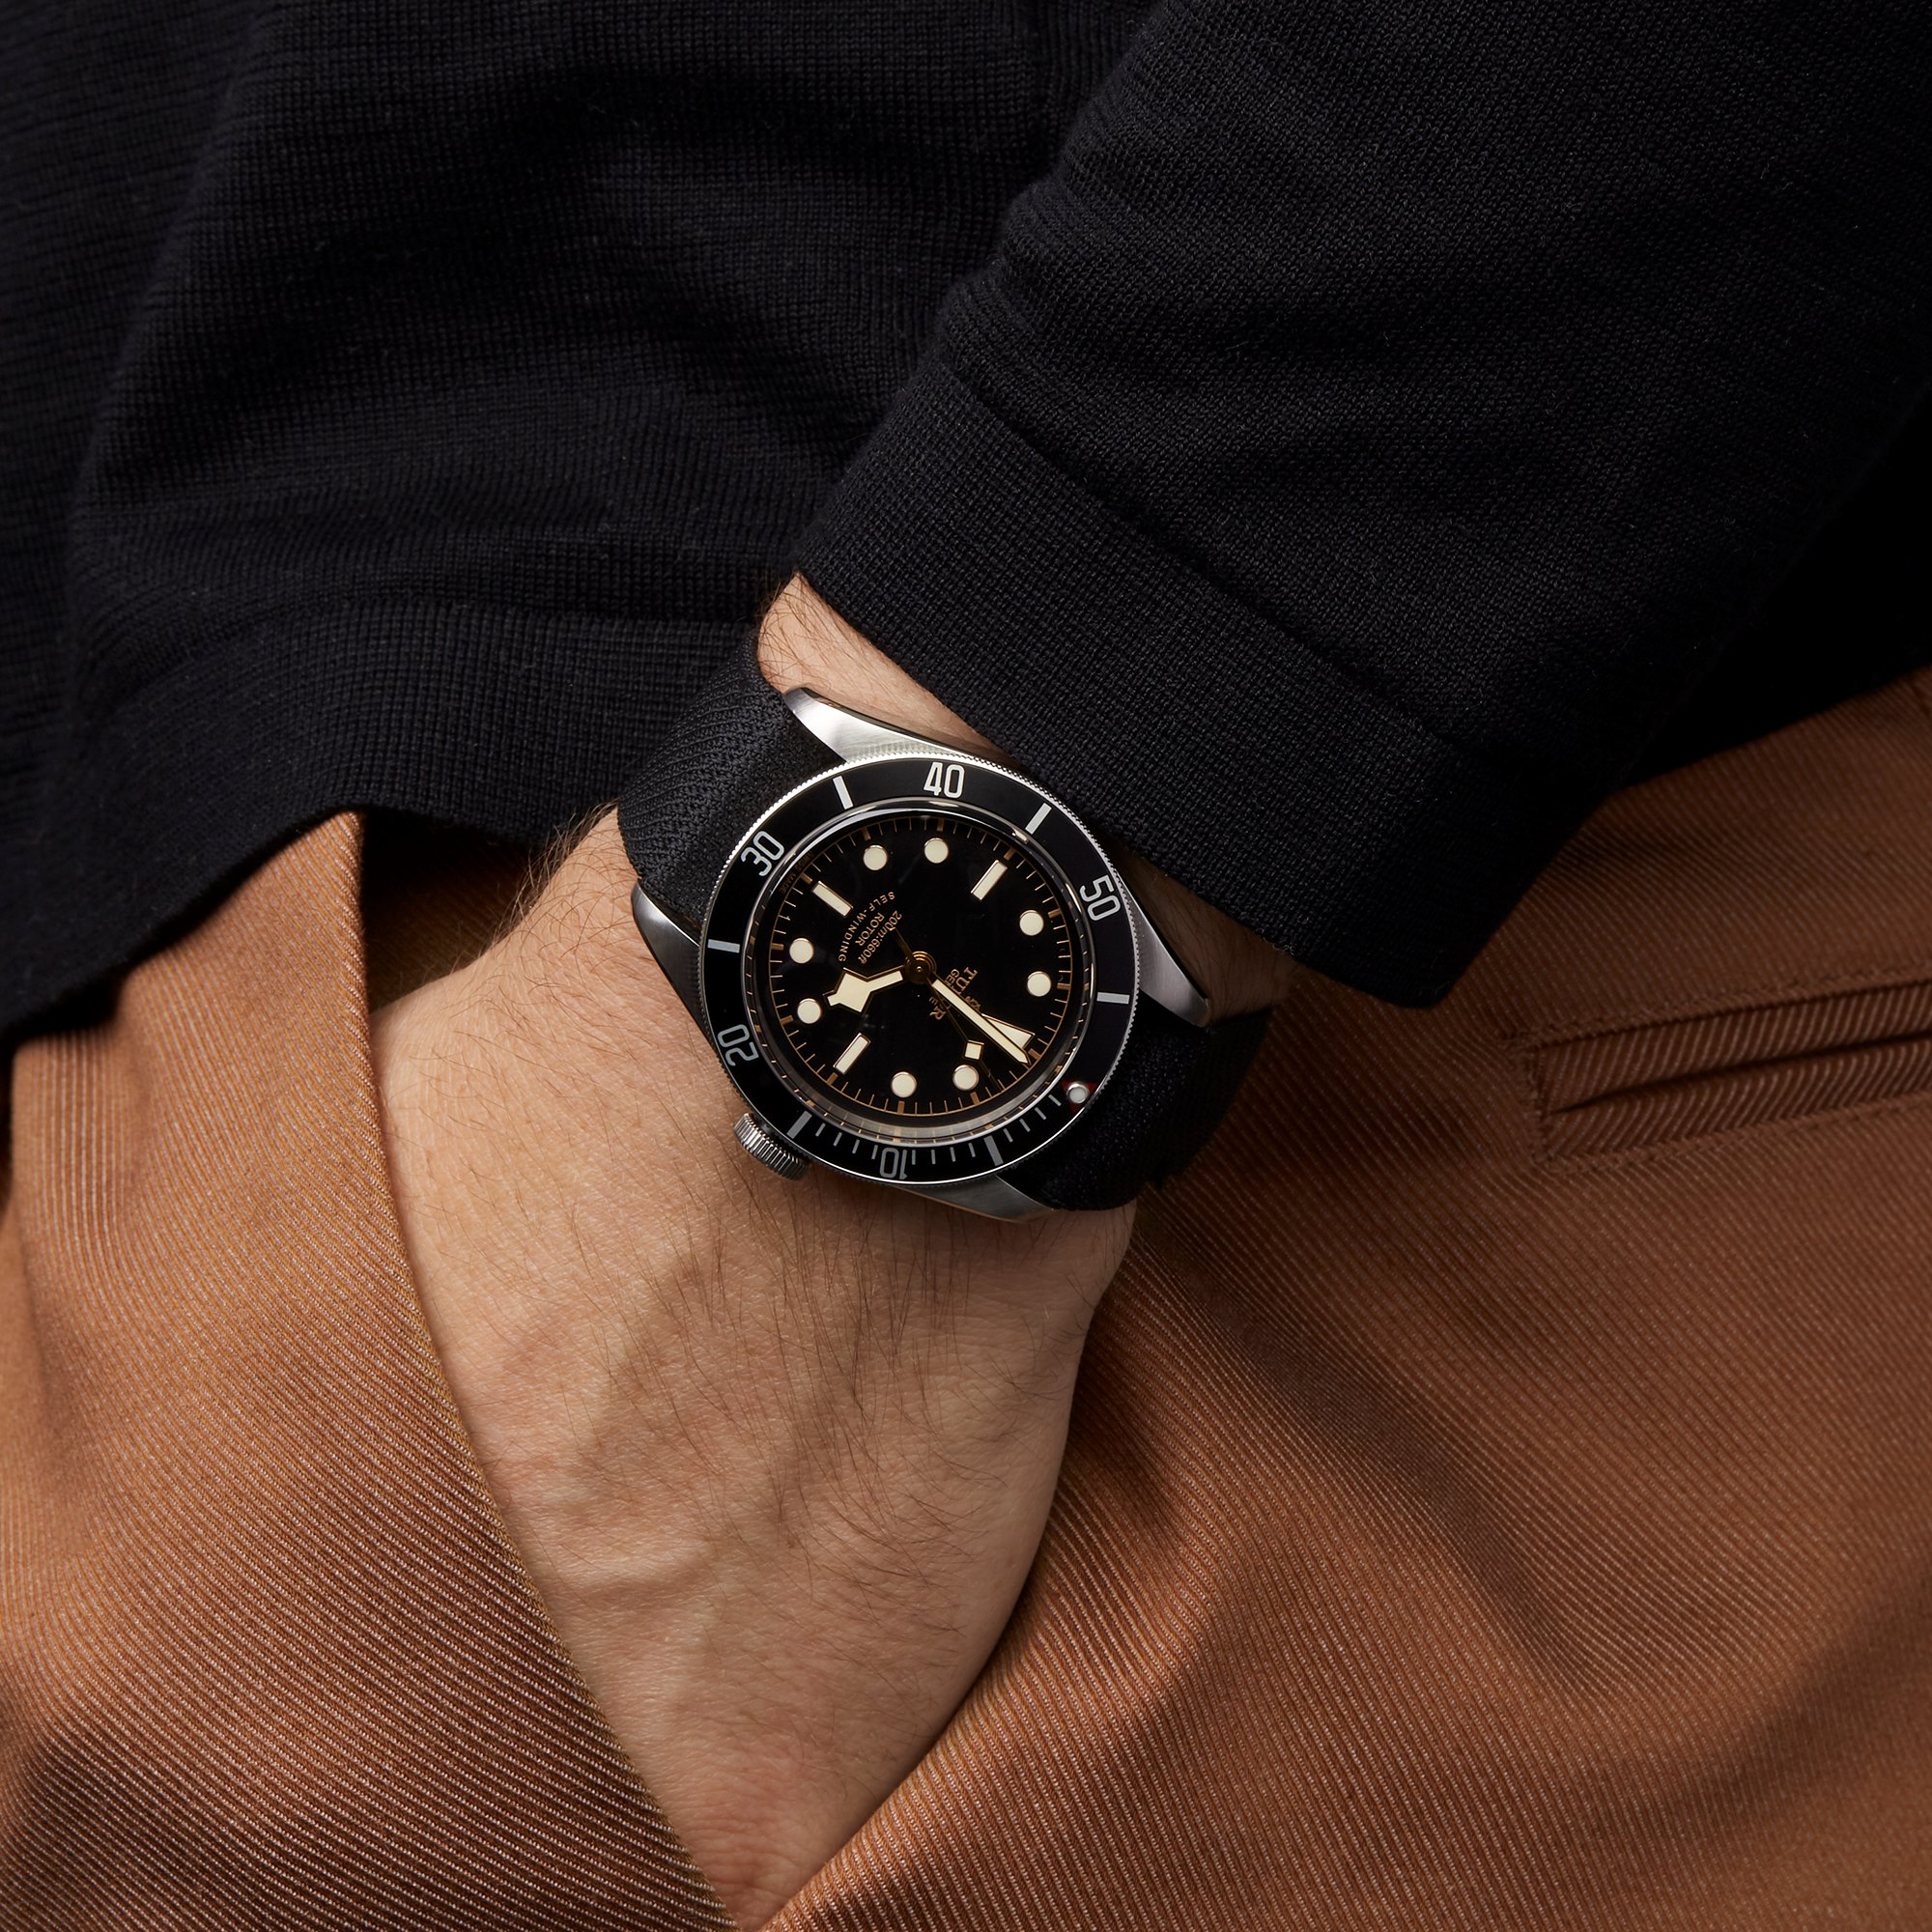 Tudor Black Bay Stainless Steel 79220N